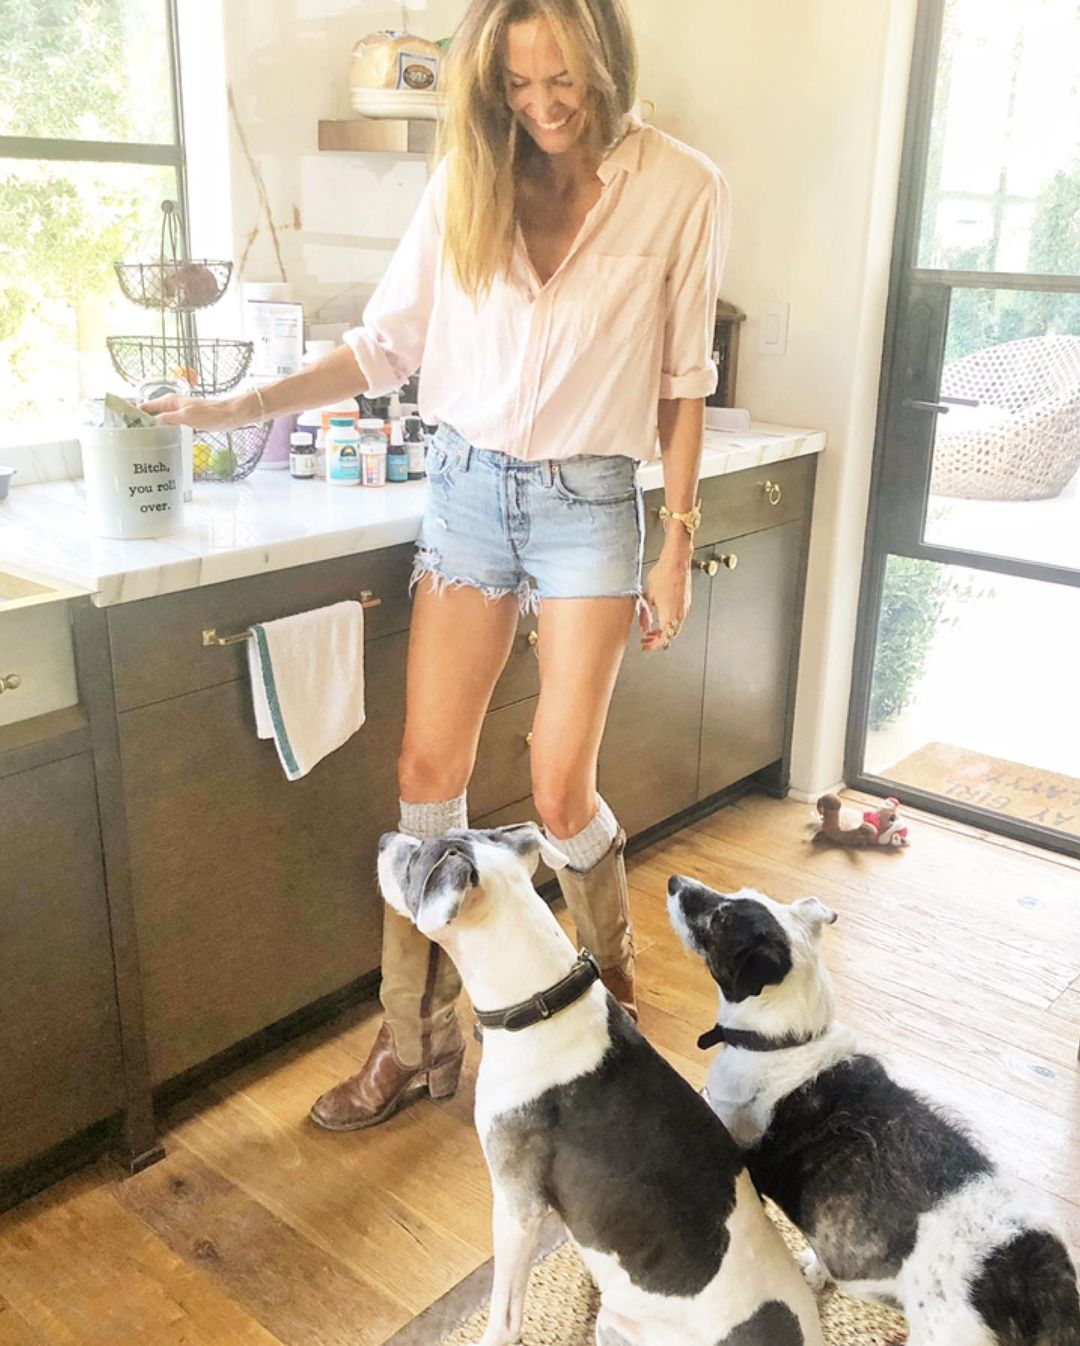 Morgan with her pets